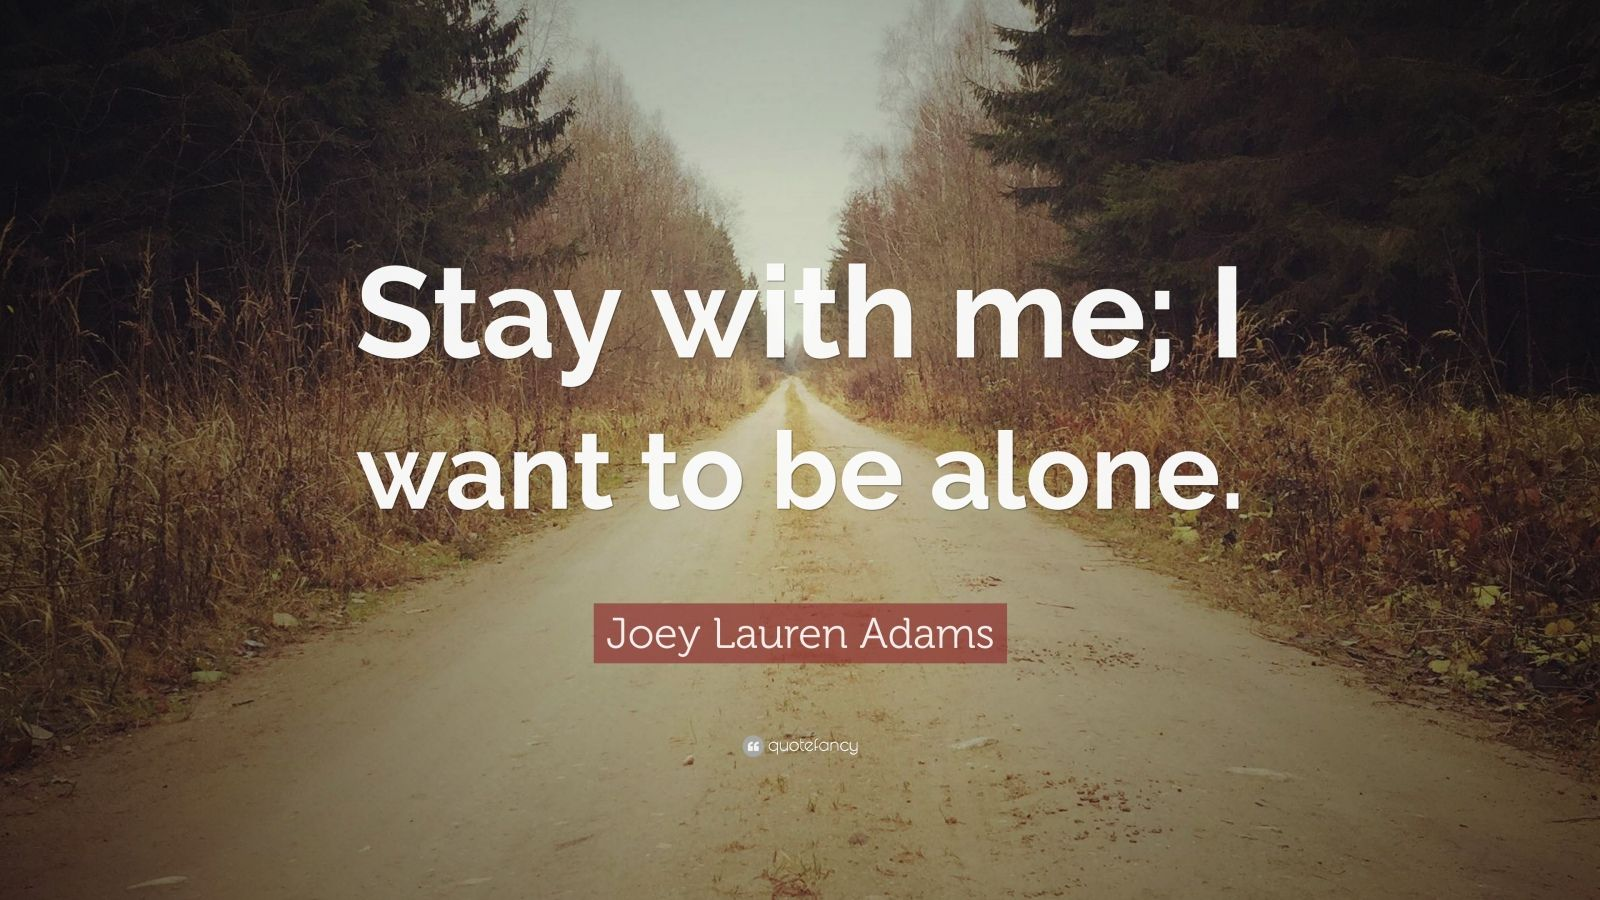 """I Want Be Alone Quotes: Joey Lauren Adams Quote: """"Stay With Me; I Want To Be Alone"""